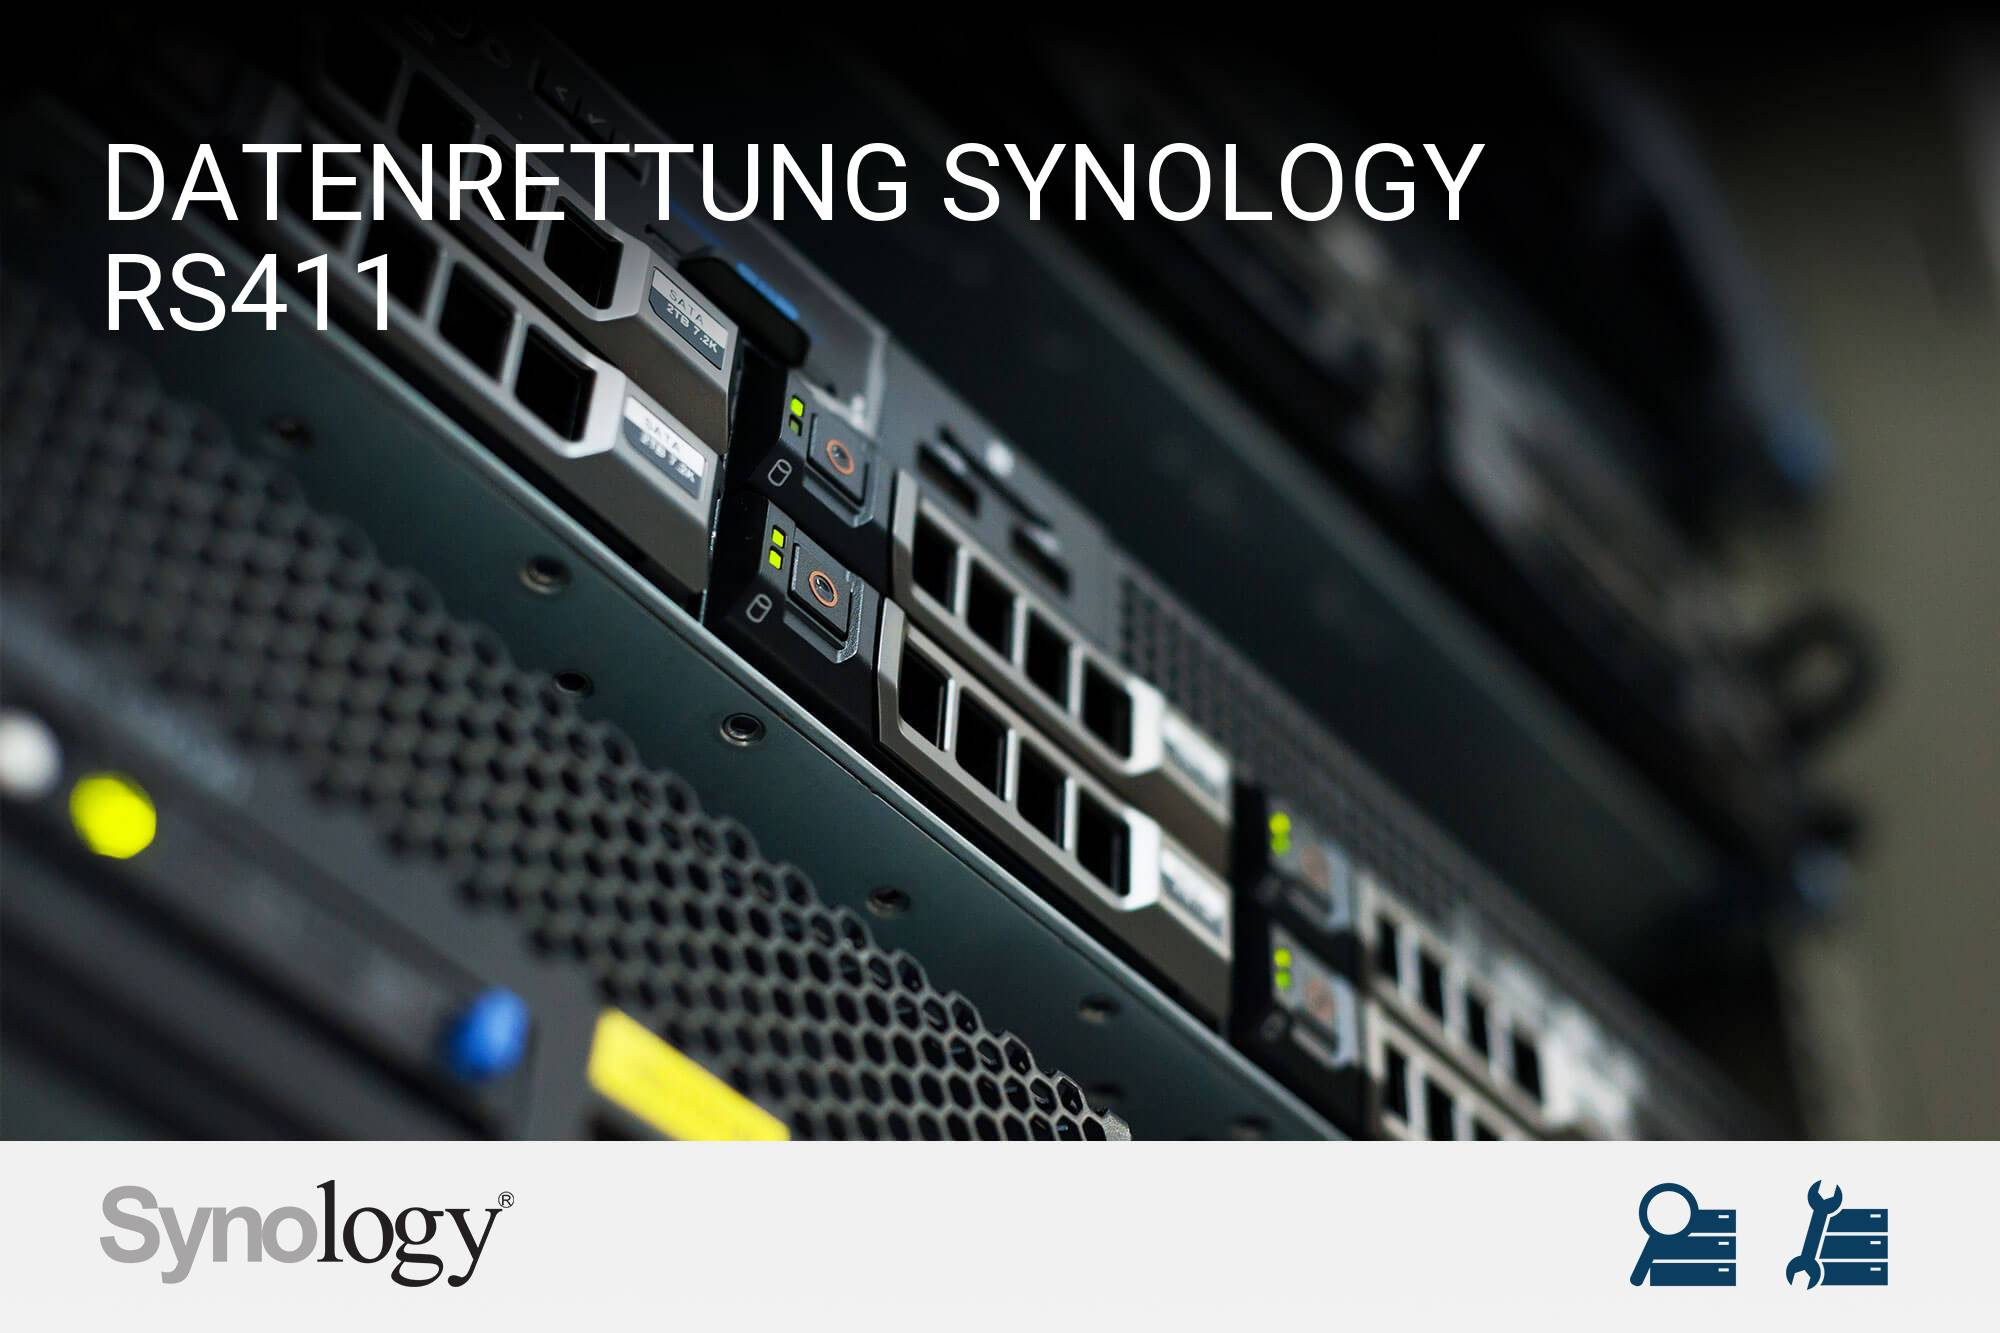 Synology RS411